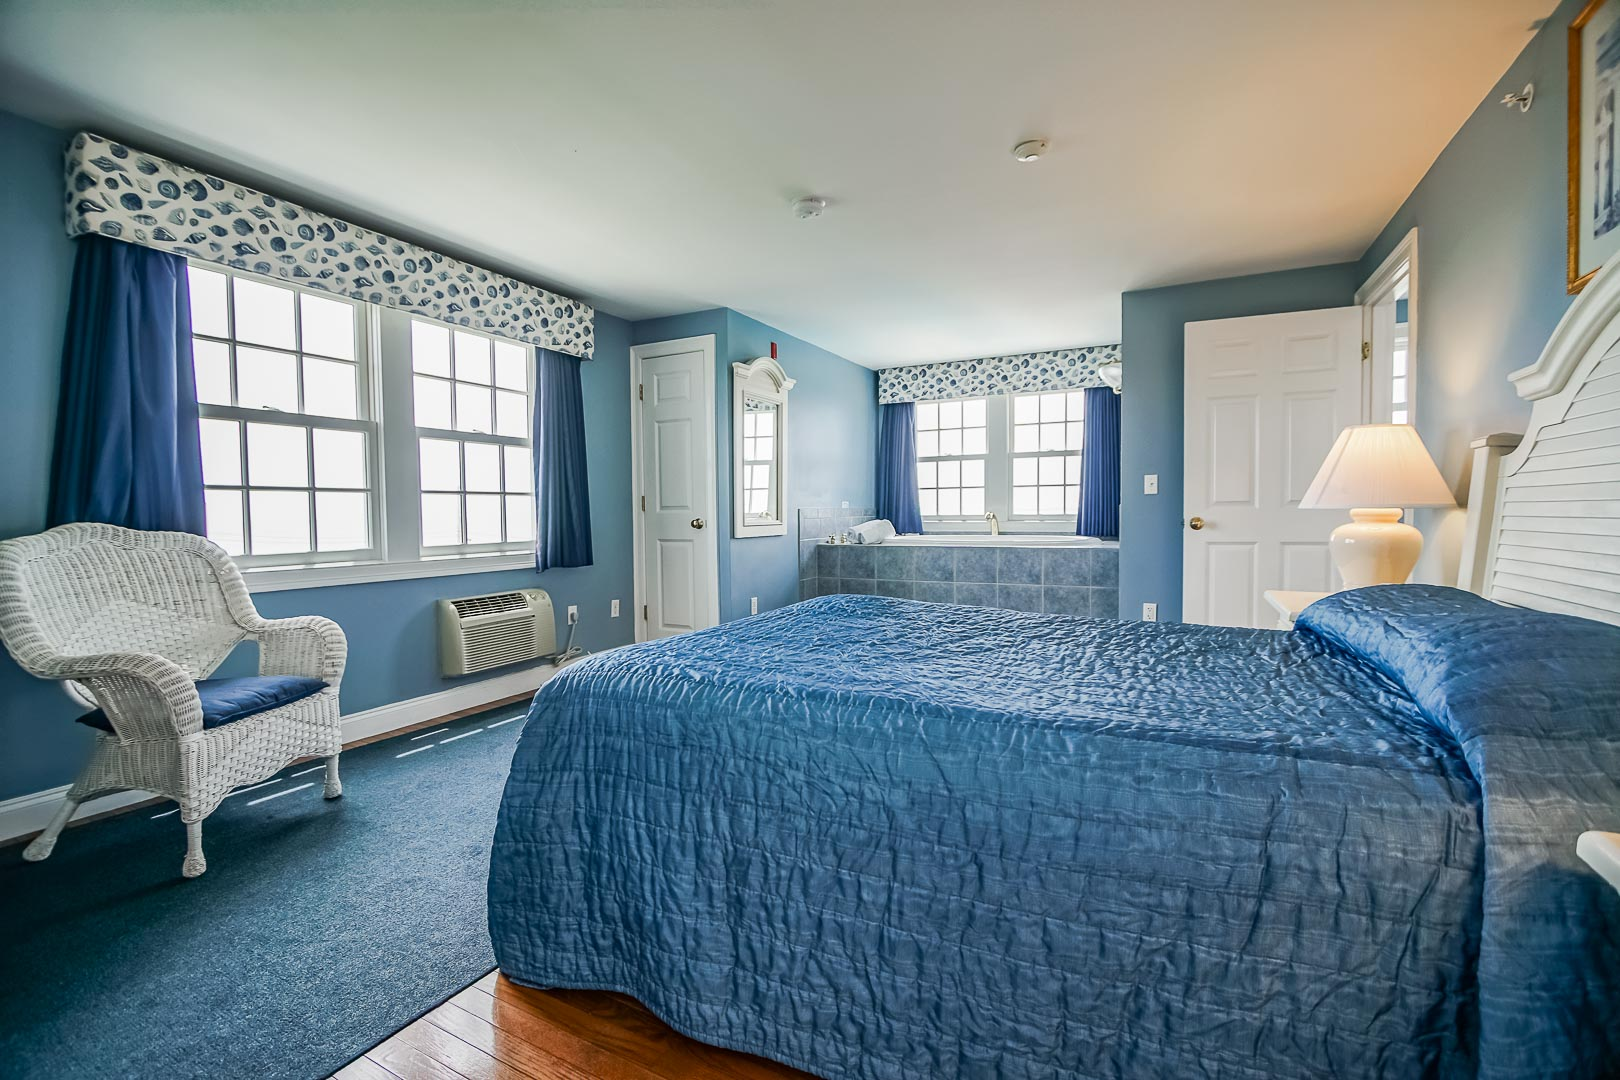 A spacious bedroom at VRI's Beachside Village Resort in Massachusetts.